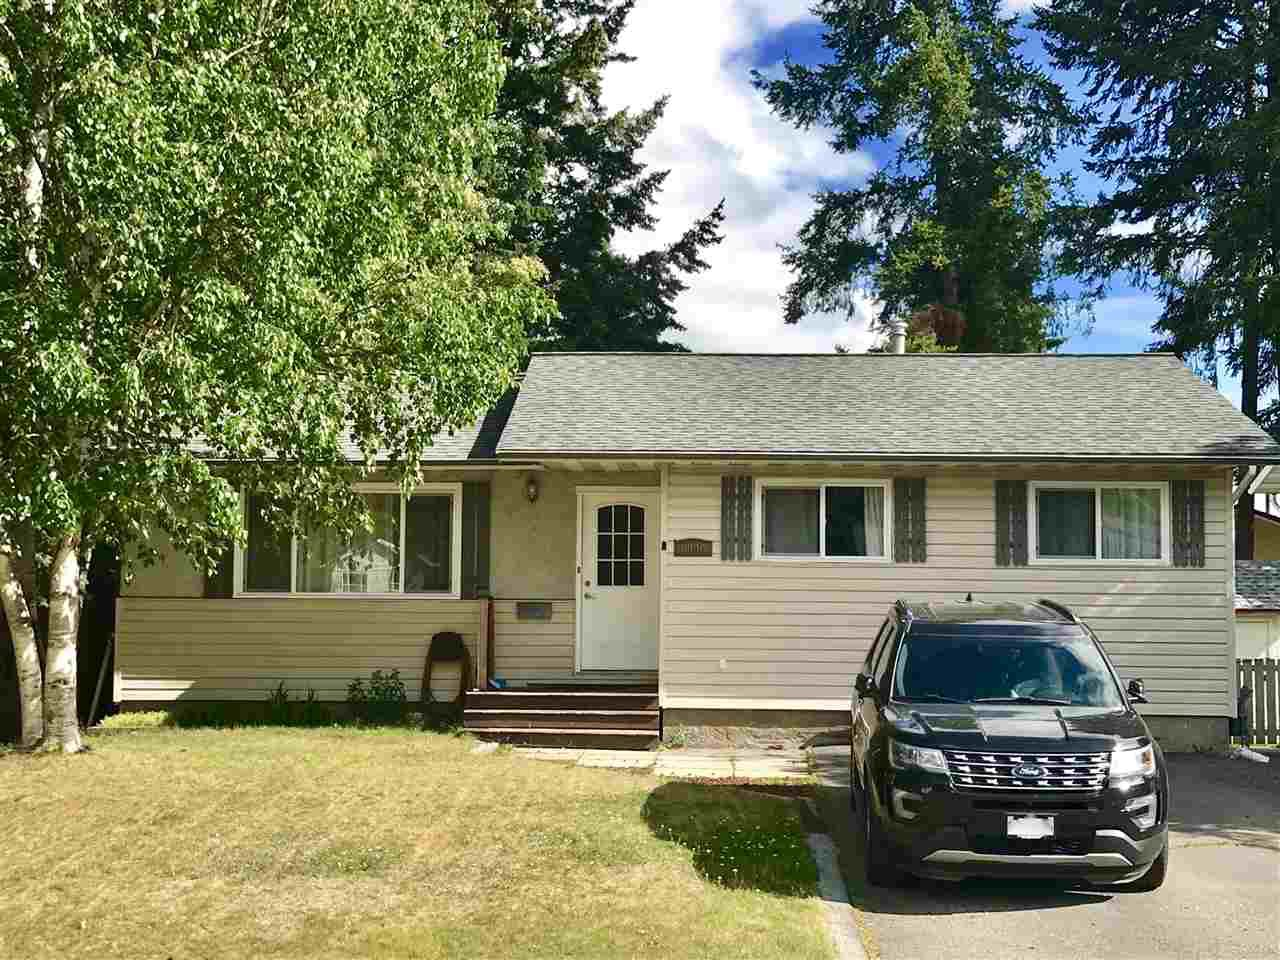 Main Photo: 6090 CALEDONIA Crescent in Prince George: Lower College House for sale (PG City South (Zone 74))  : MLS®# R2382011